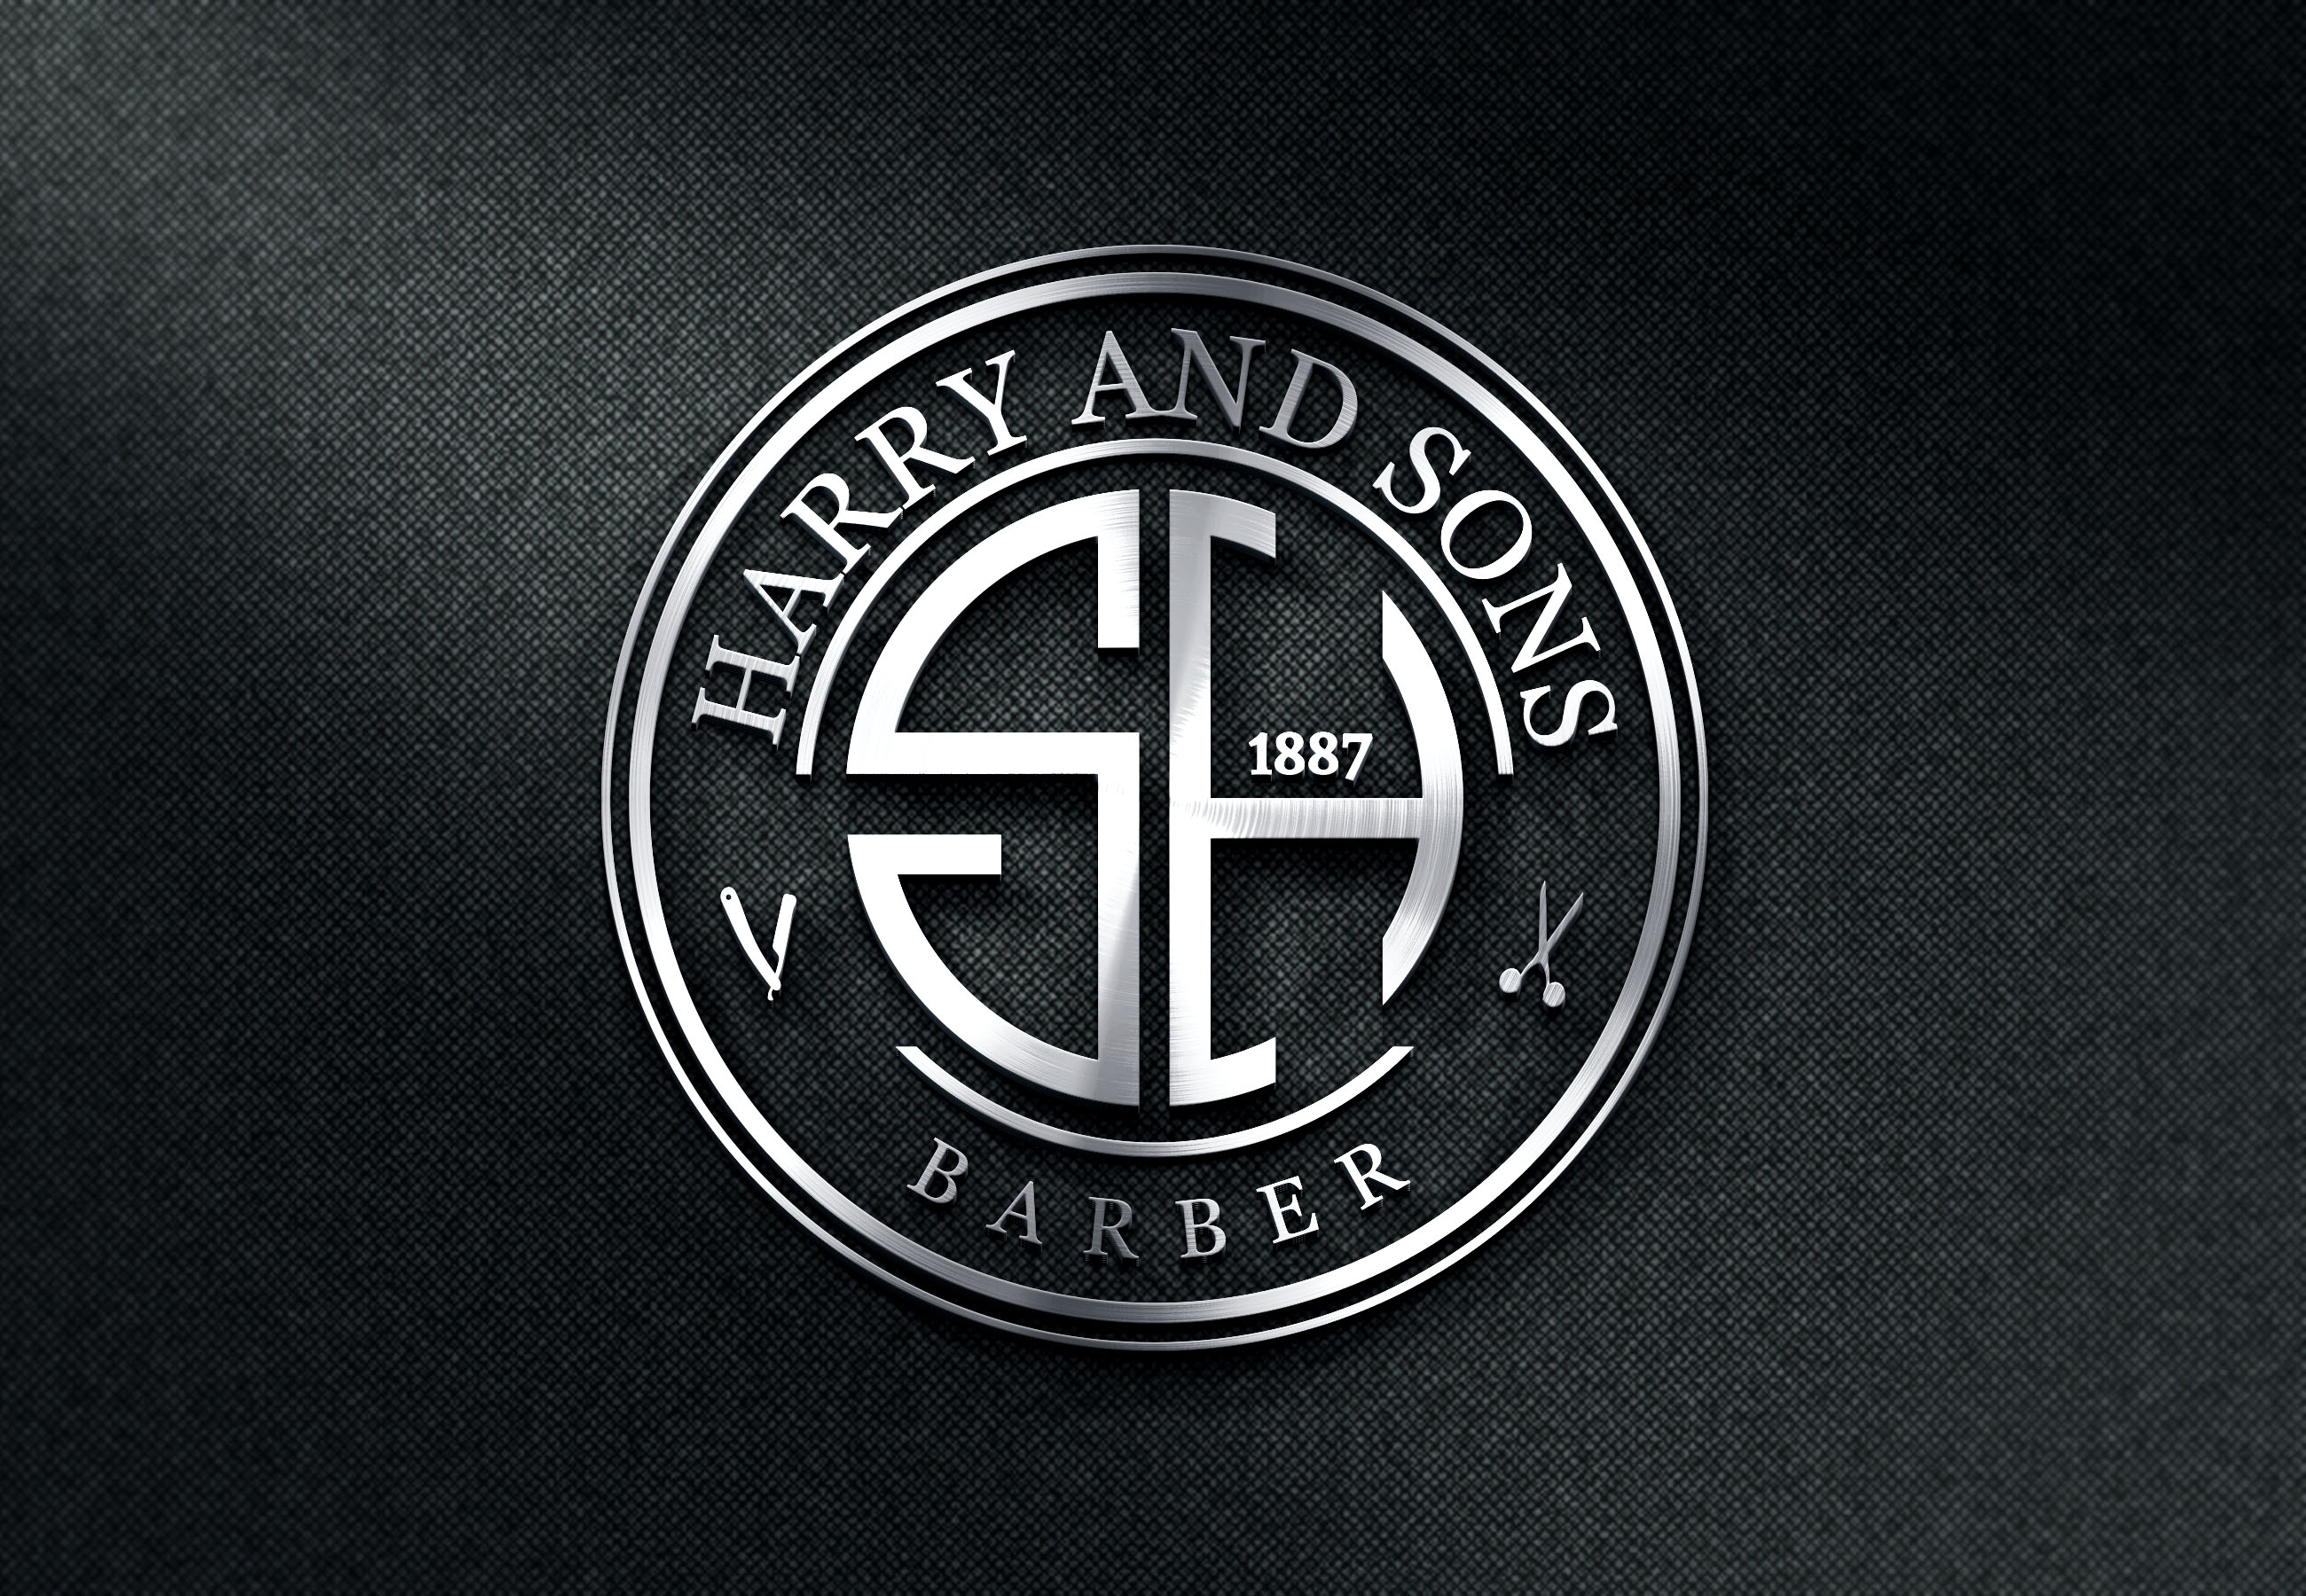 Logo Design by PixArt - Entry No. 159 in the Logo Design Contest Captivating Logo Design for Harry and Sons Barber.